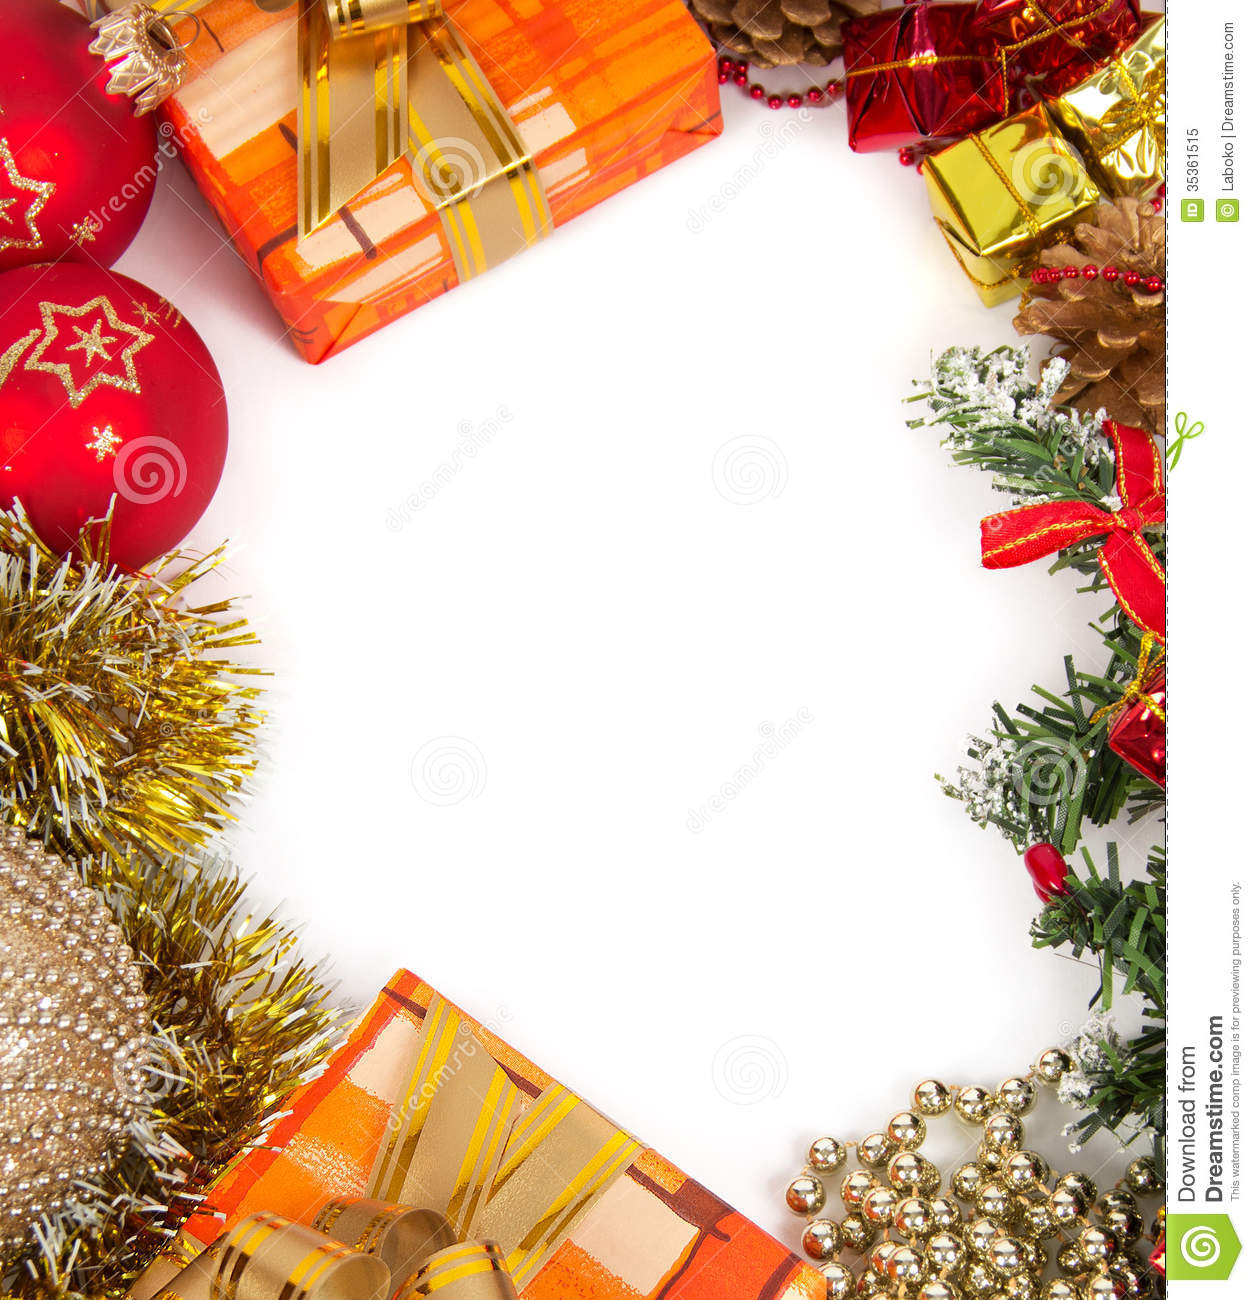 New Year\'s frame stock image. Image of garland, ball - 35361515